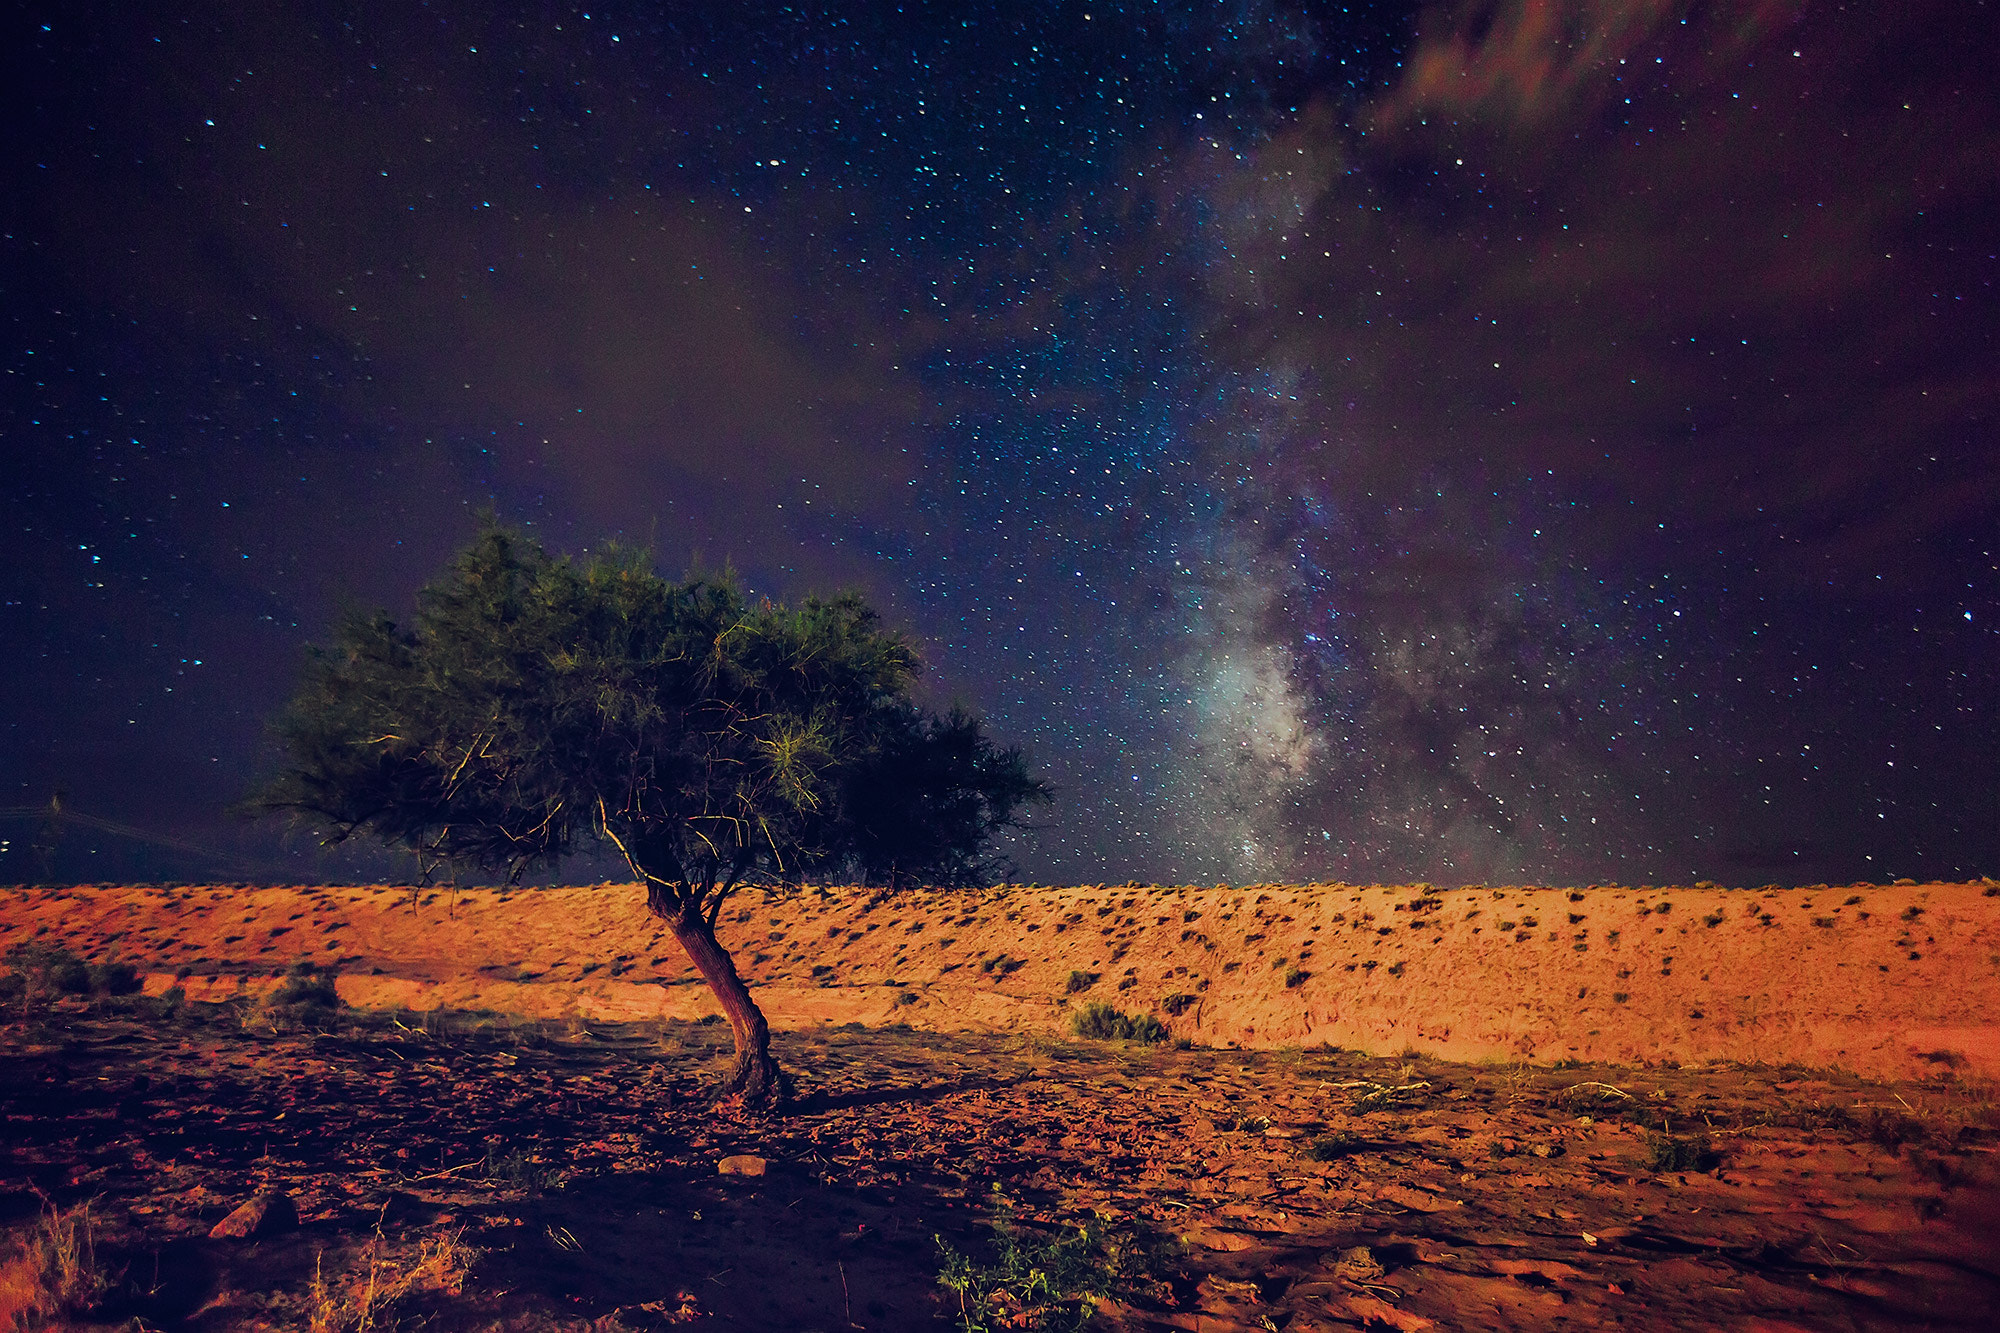 Photograph Midnight in the Desert by Paul Reiffer on 500px